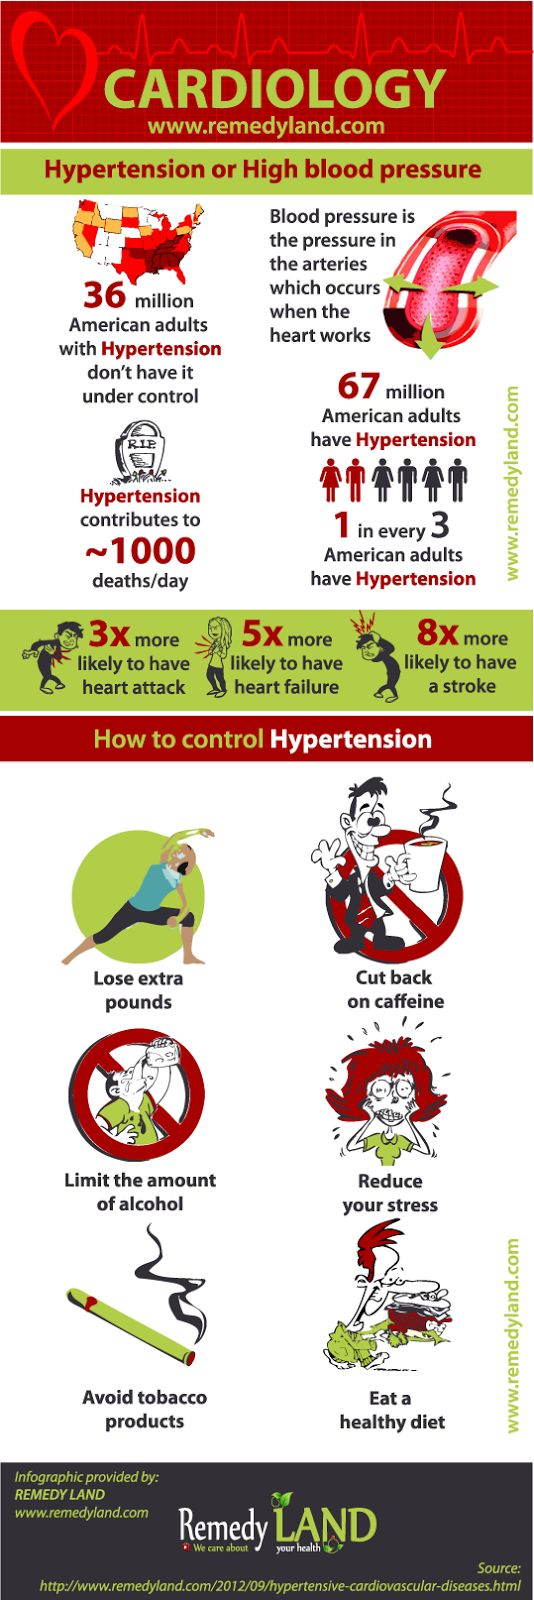 All about hypertension or high blood pressure #hypertension #highbloodpressure: